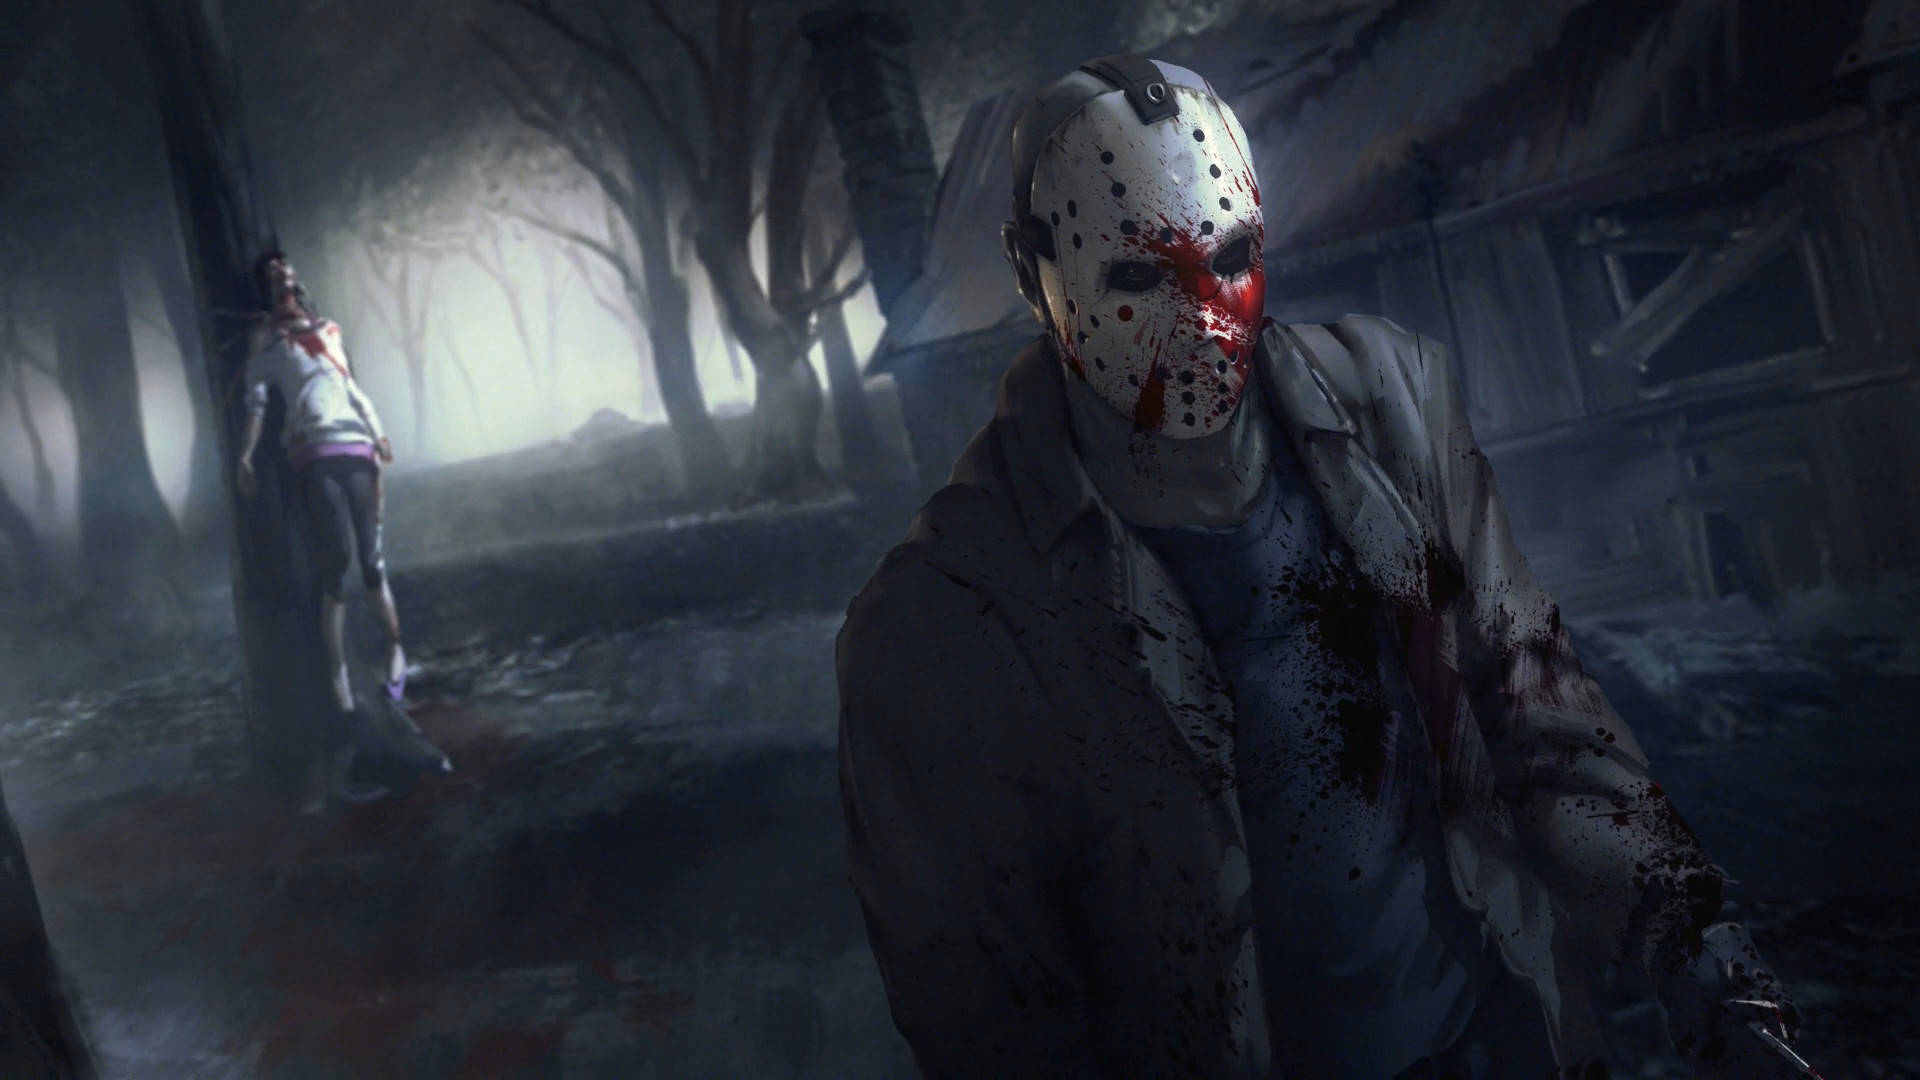 Res: 1920x1080, ... leatherface ...